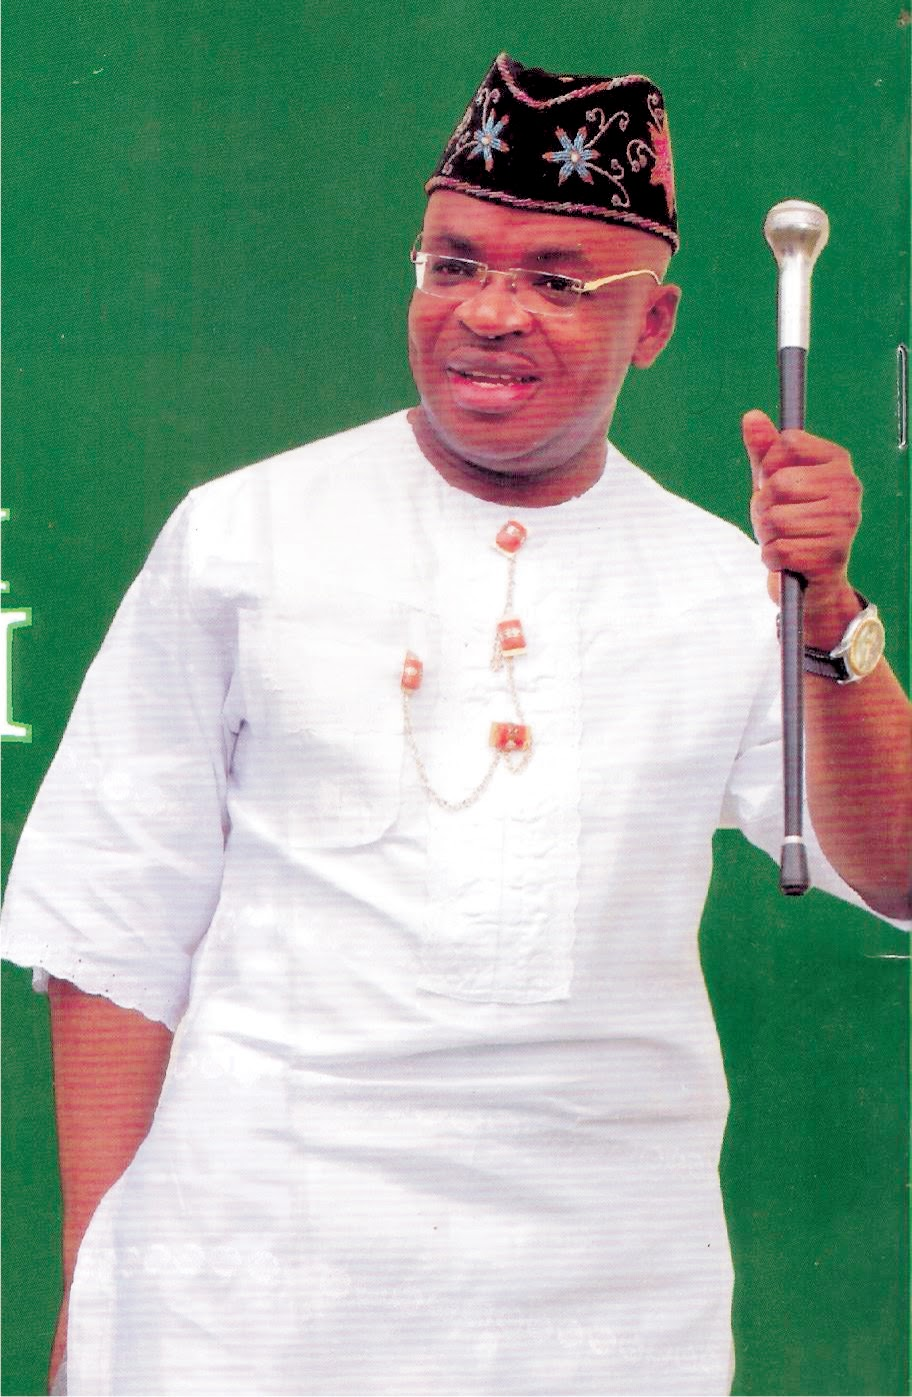 Sustaining superior performance: My vision and mission as the next Governor of Akwa Ibom State - Udom Emmanuel